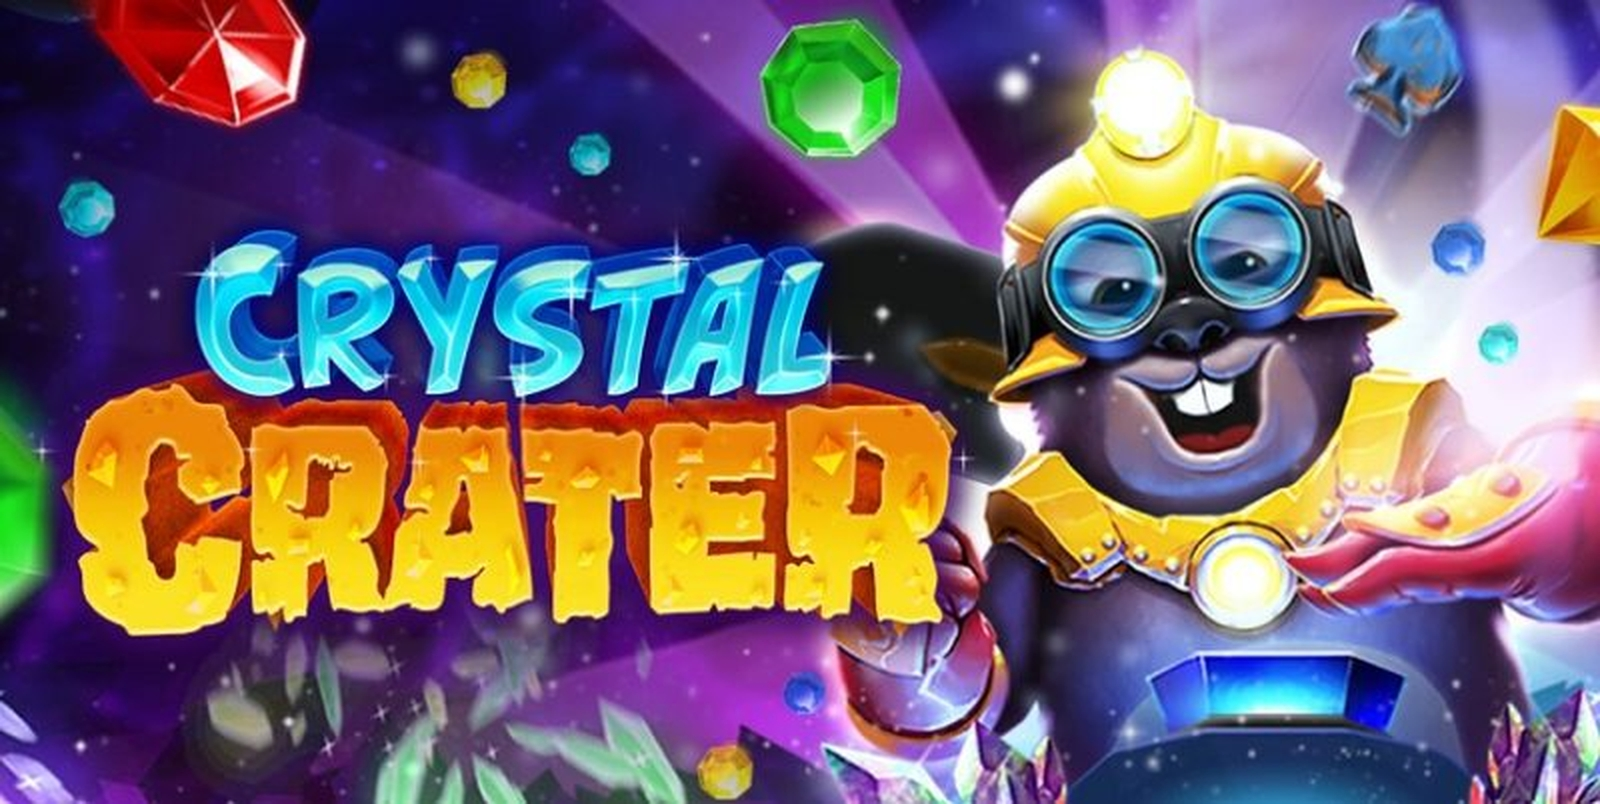 Crystal Crater Online Slot Demo Game by Radi8 Games